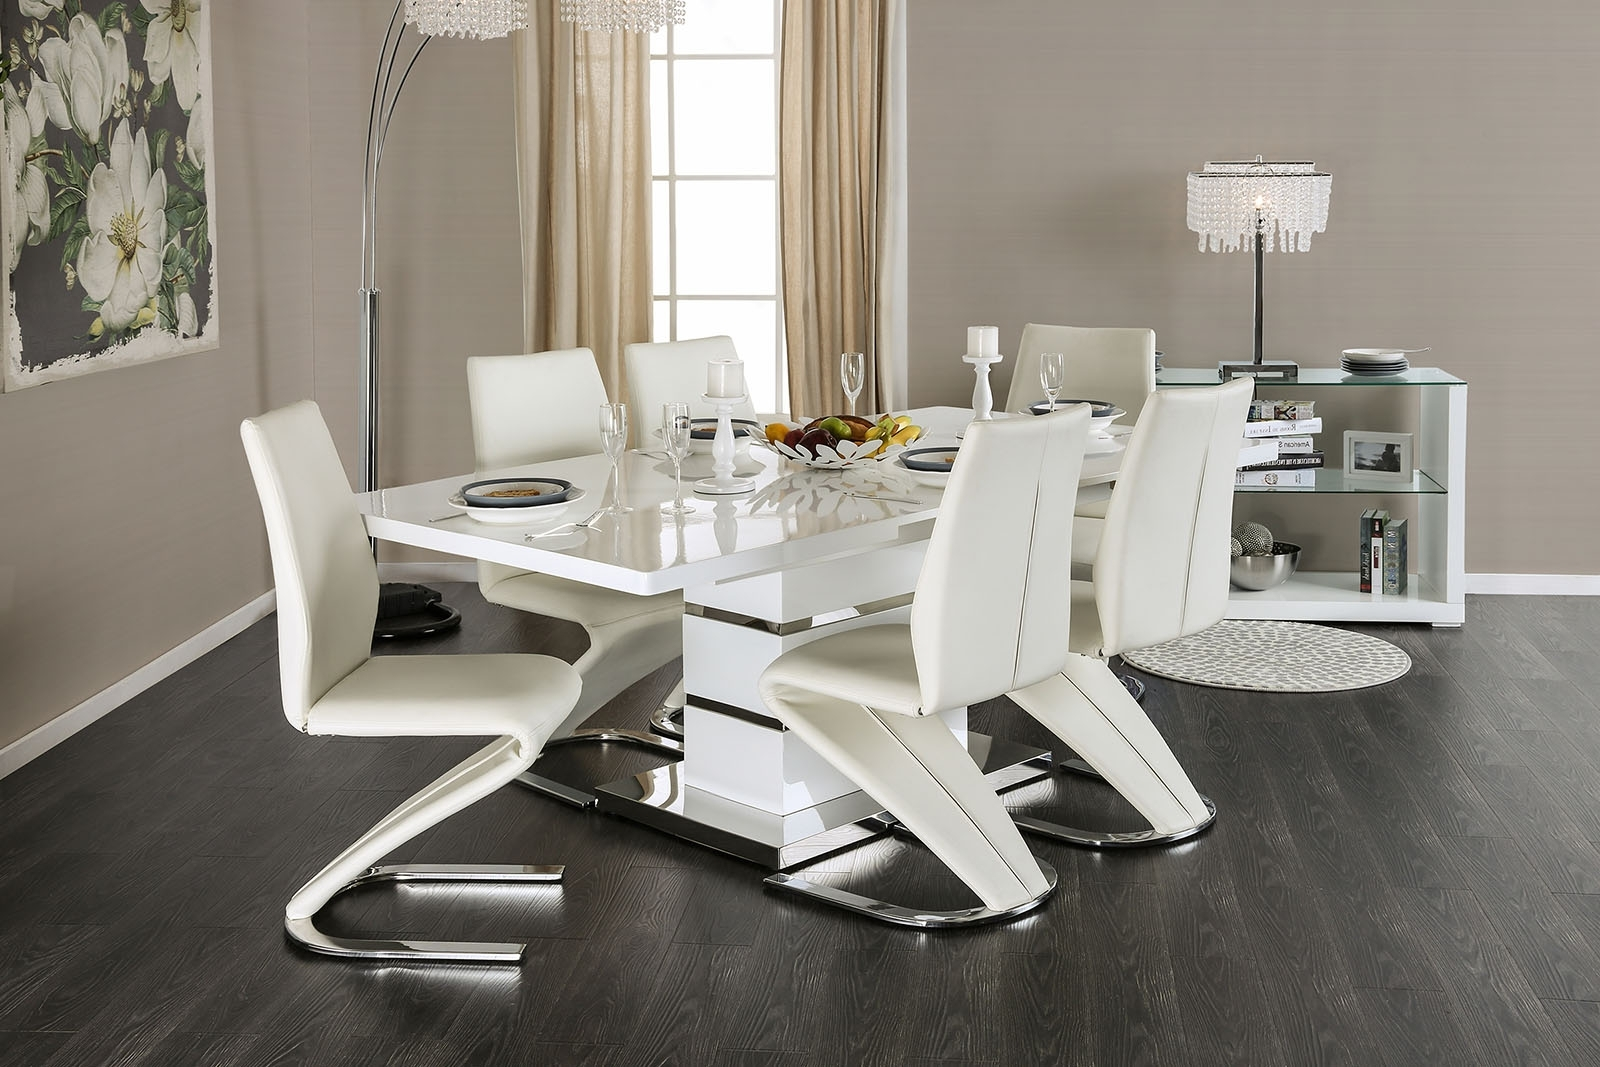 Newest Midvale Contemporary Style White High Gloss Lacquer Finish & Chrome In White Gloss Dining Tables Sets (View 13 of 25)